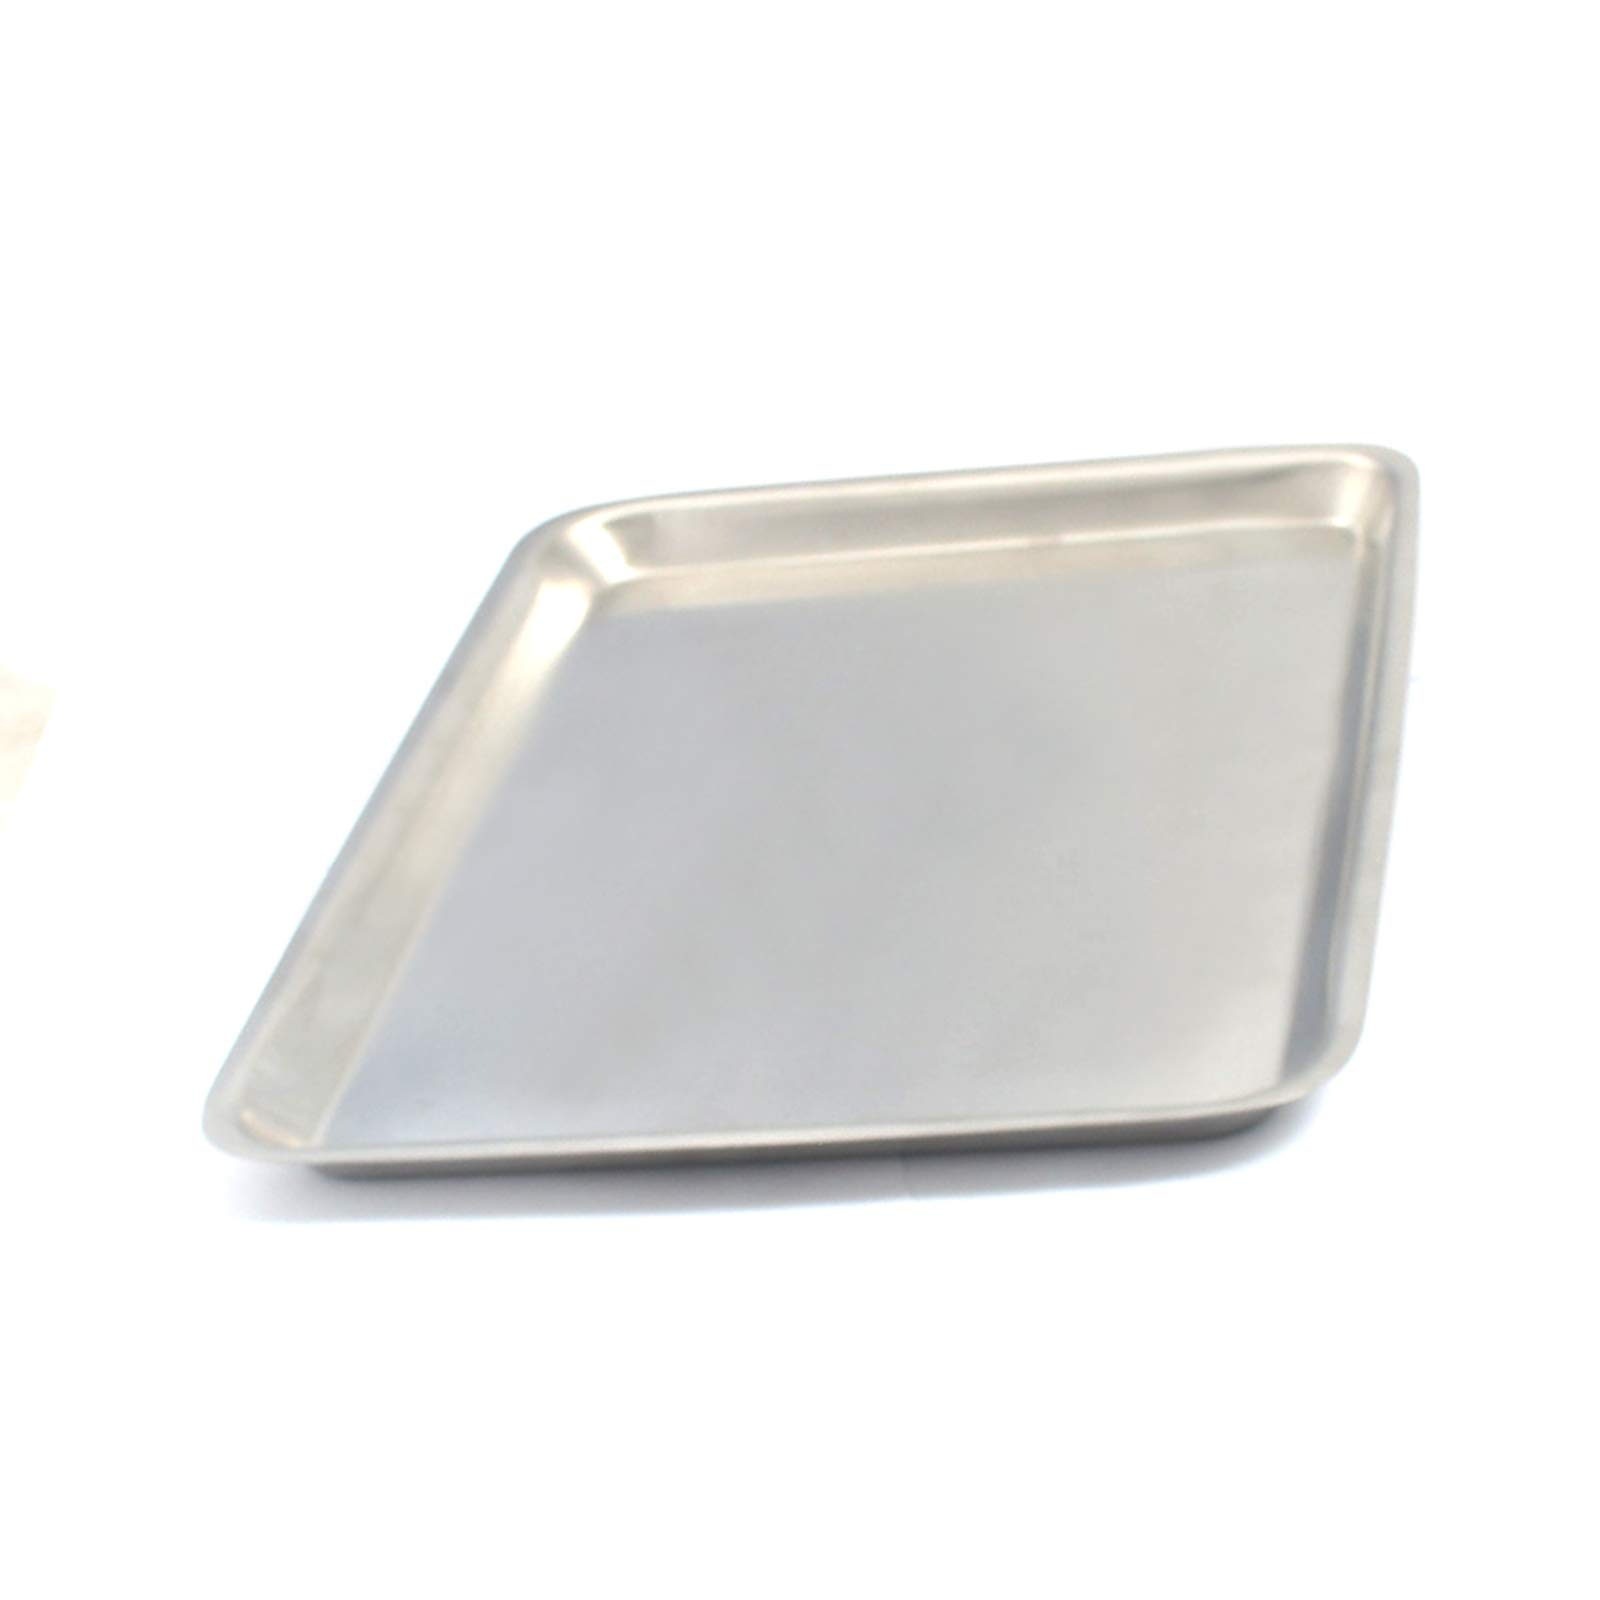 DDP Stainless Steel Instrument Tray 8-5/8'' X 6-5/8'' X 1/2'' Piercing Tattoo Instrument by DDP